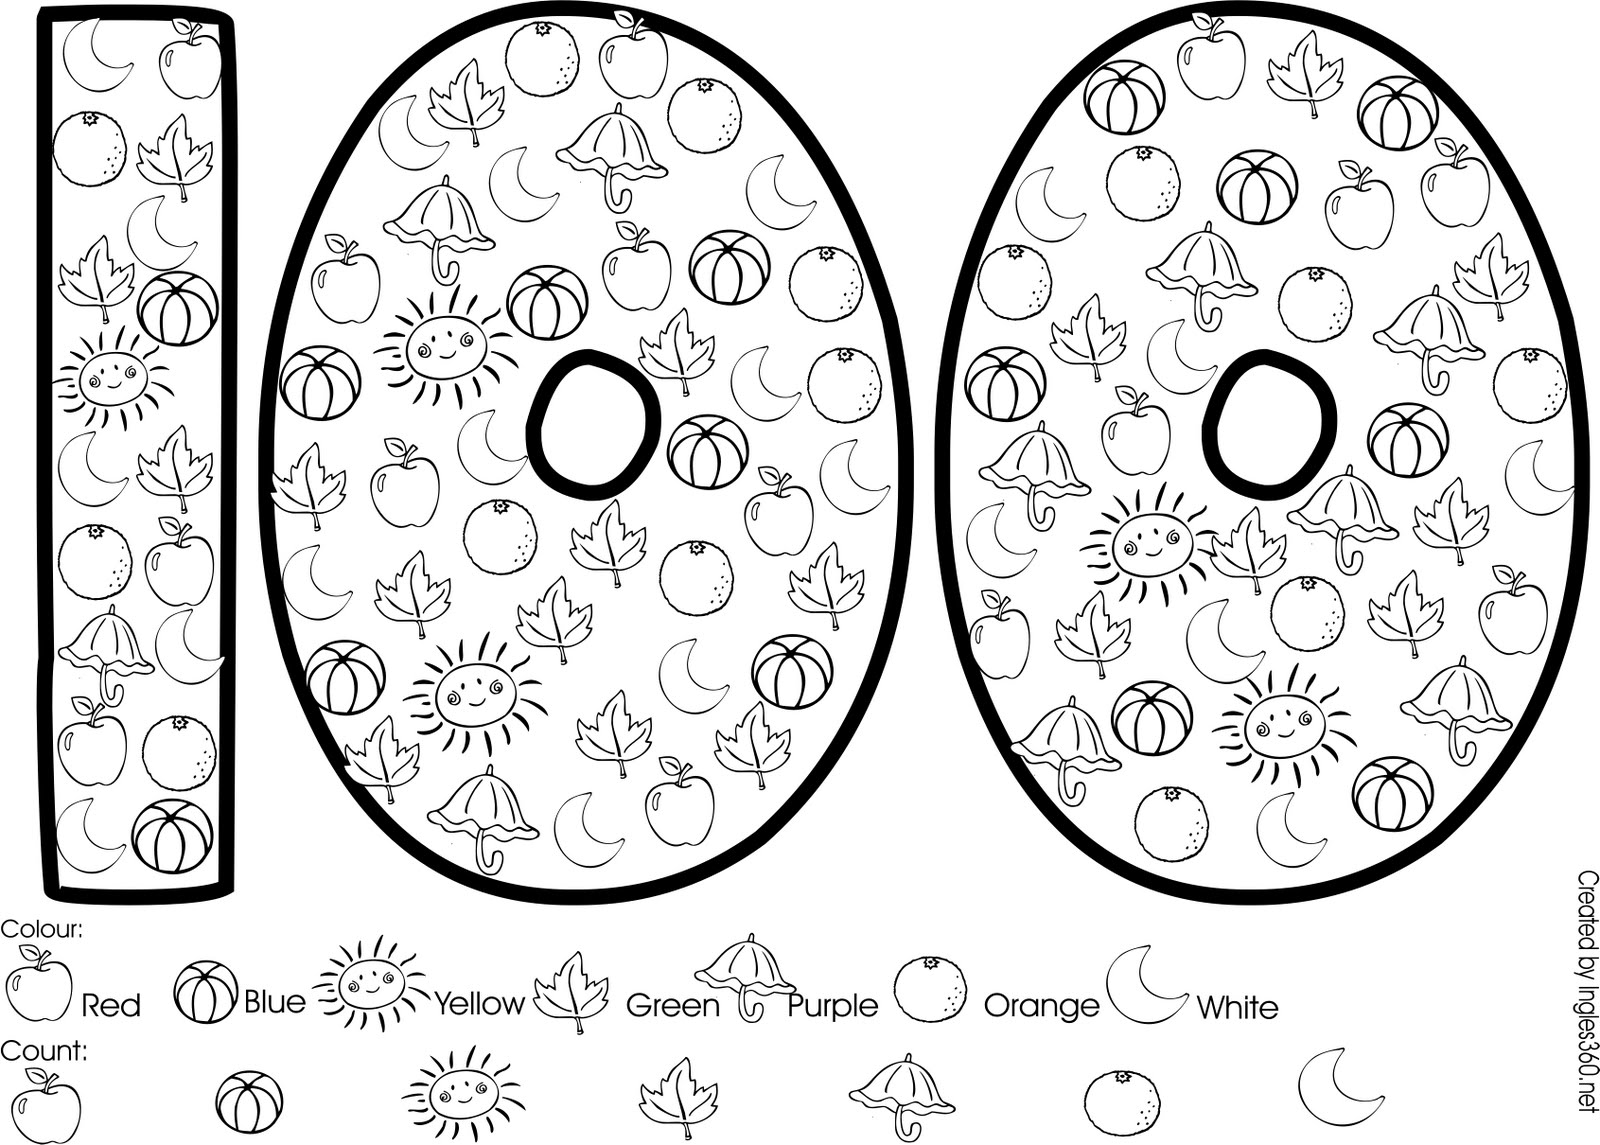 100 Coloring Pages At Getdrawings Com Free For Personal